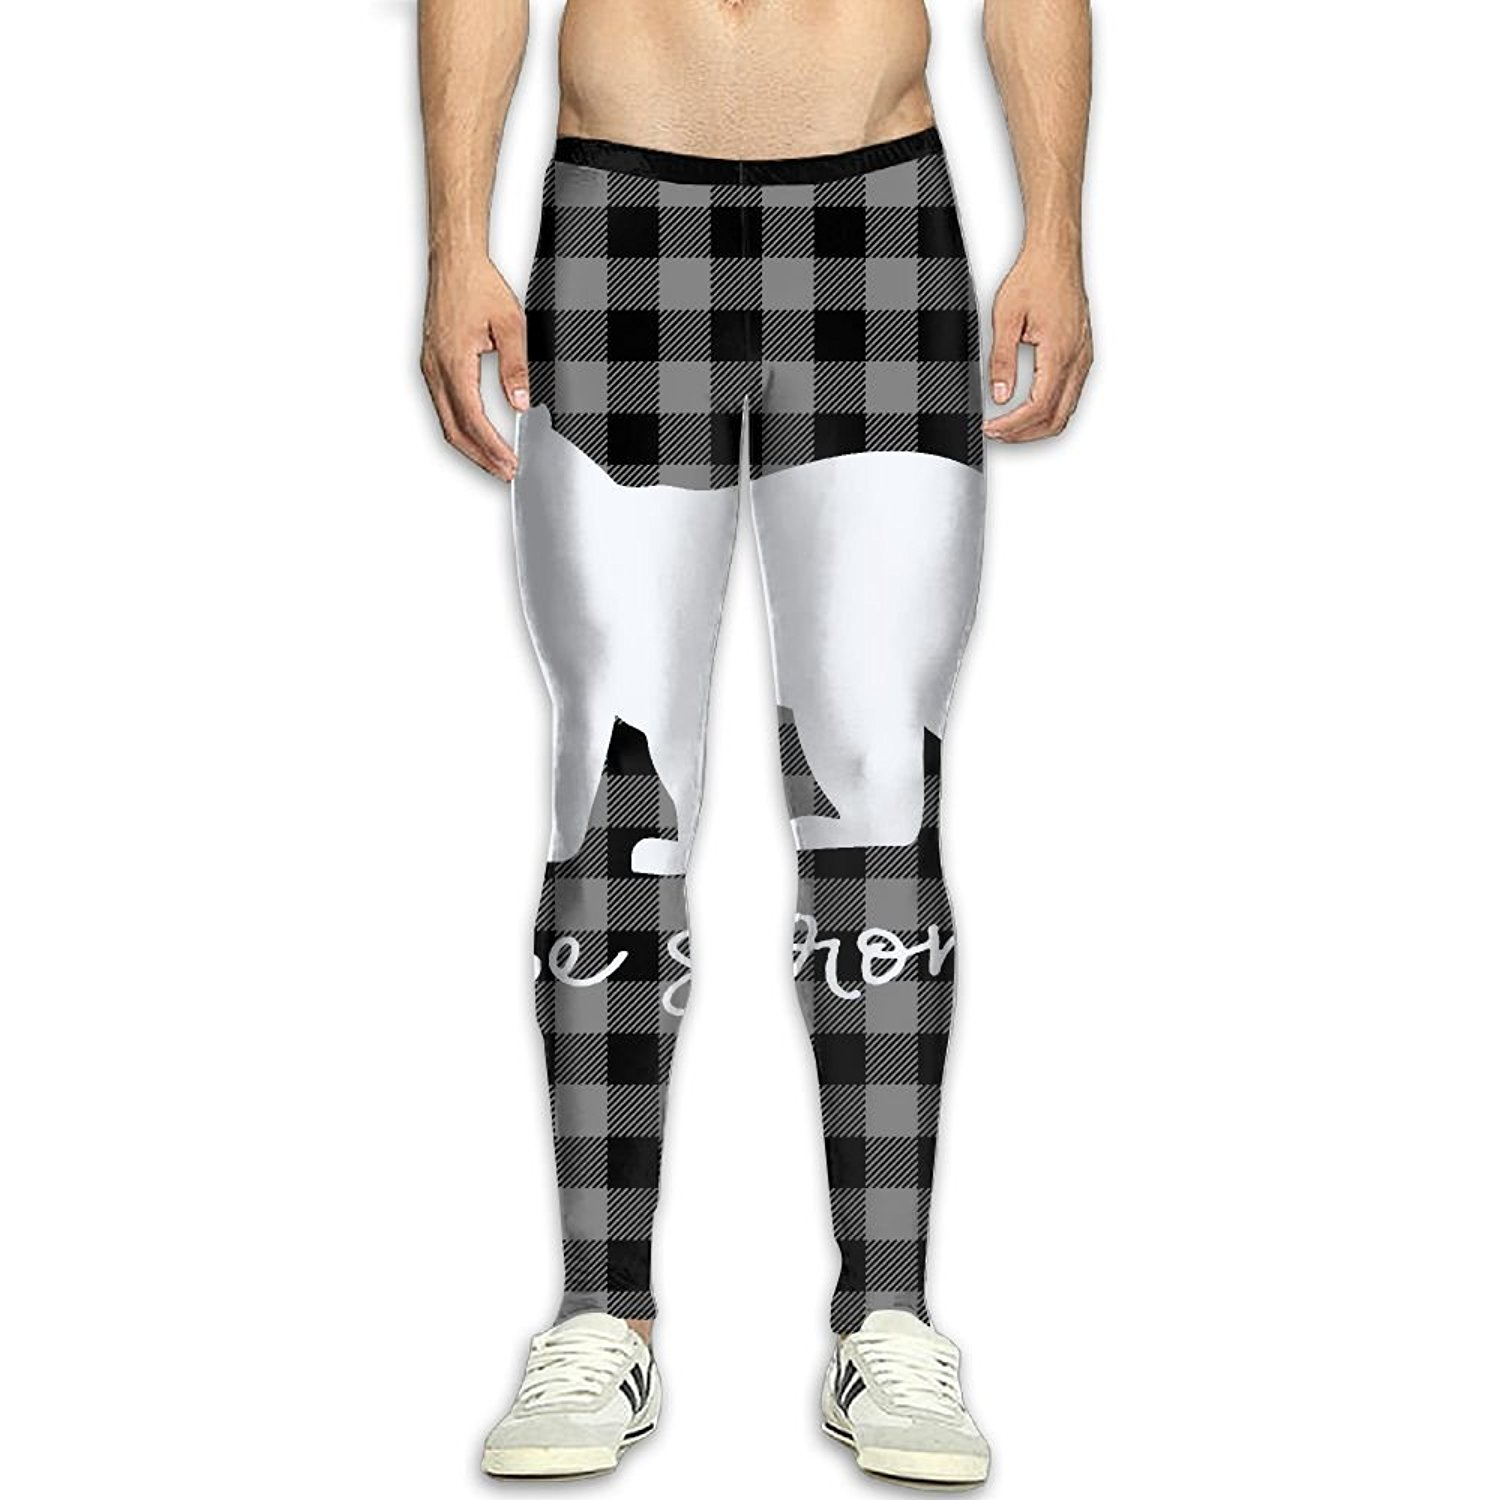 d3fbb16000 Get Quotations · Virgo Plaid Bear Buffalo Soft Compression Pants/Running  Tights Baselayer Mens Winter Pants Mens Christmas